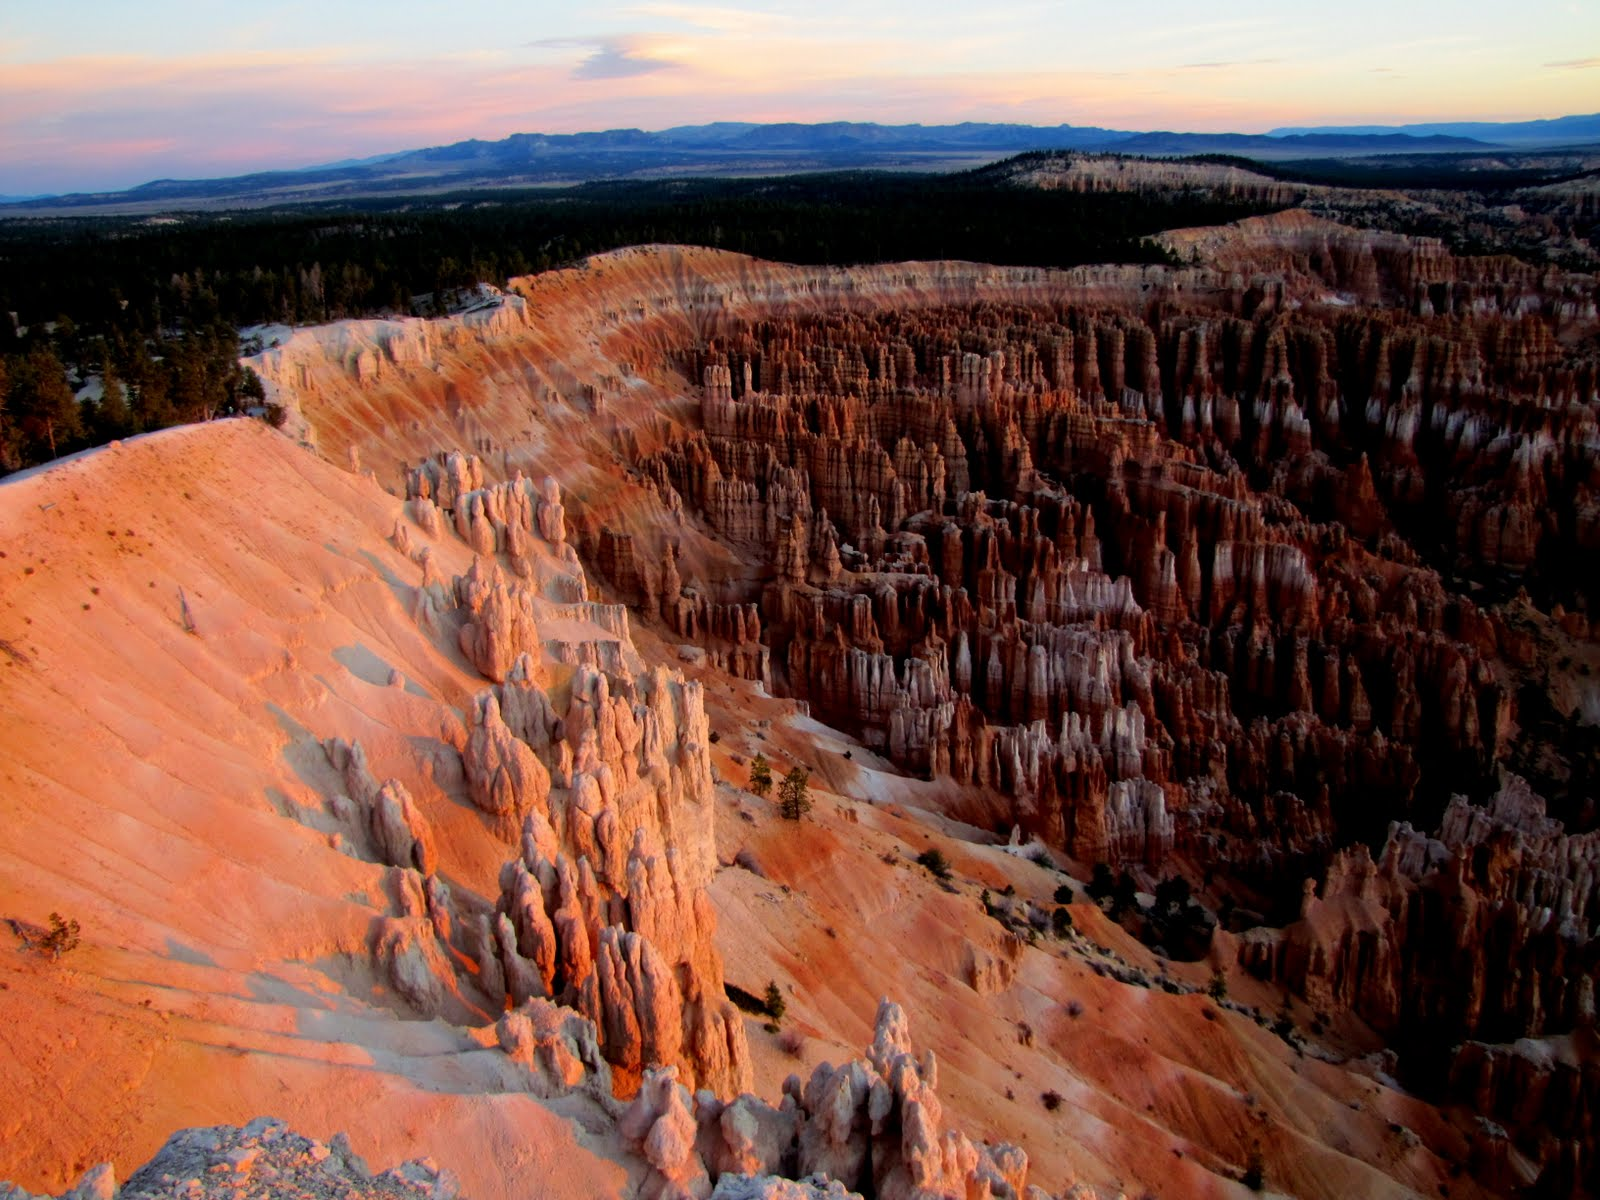 Bryce Canyon at 6:40am, the Sunrise